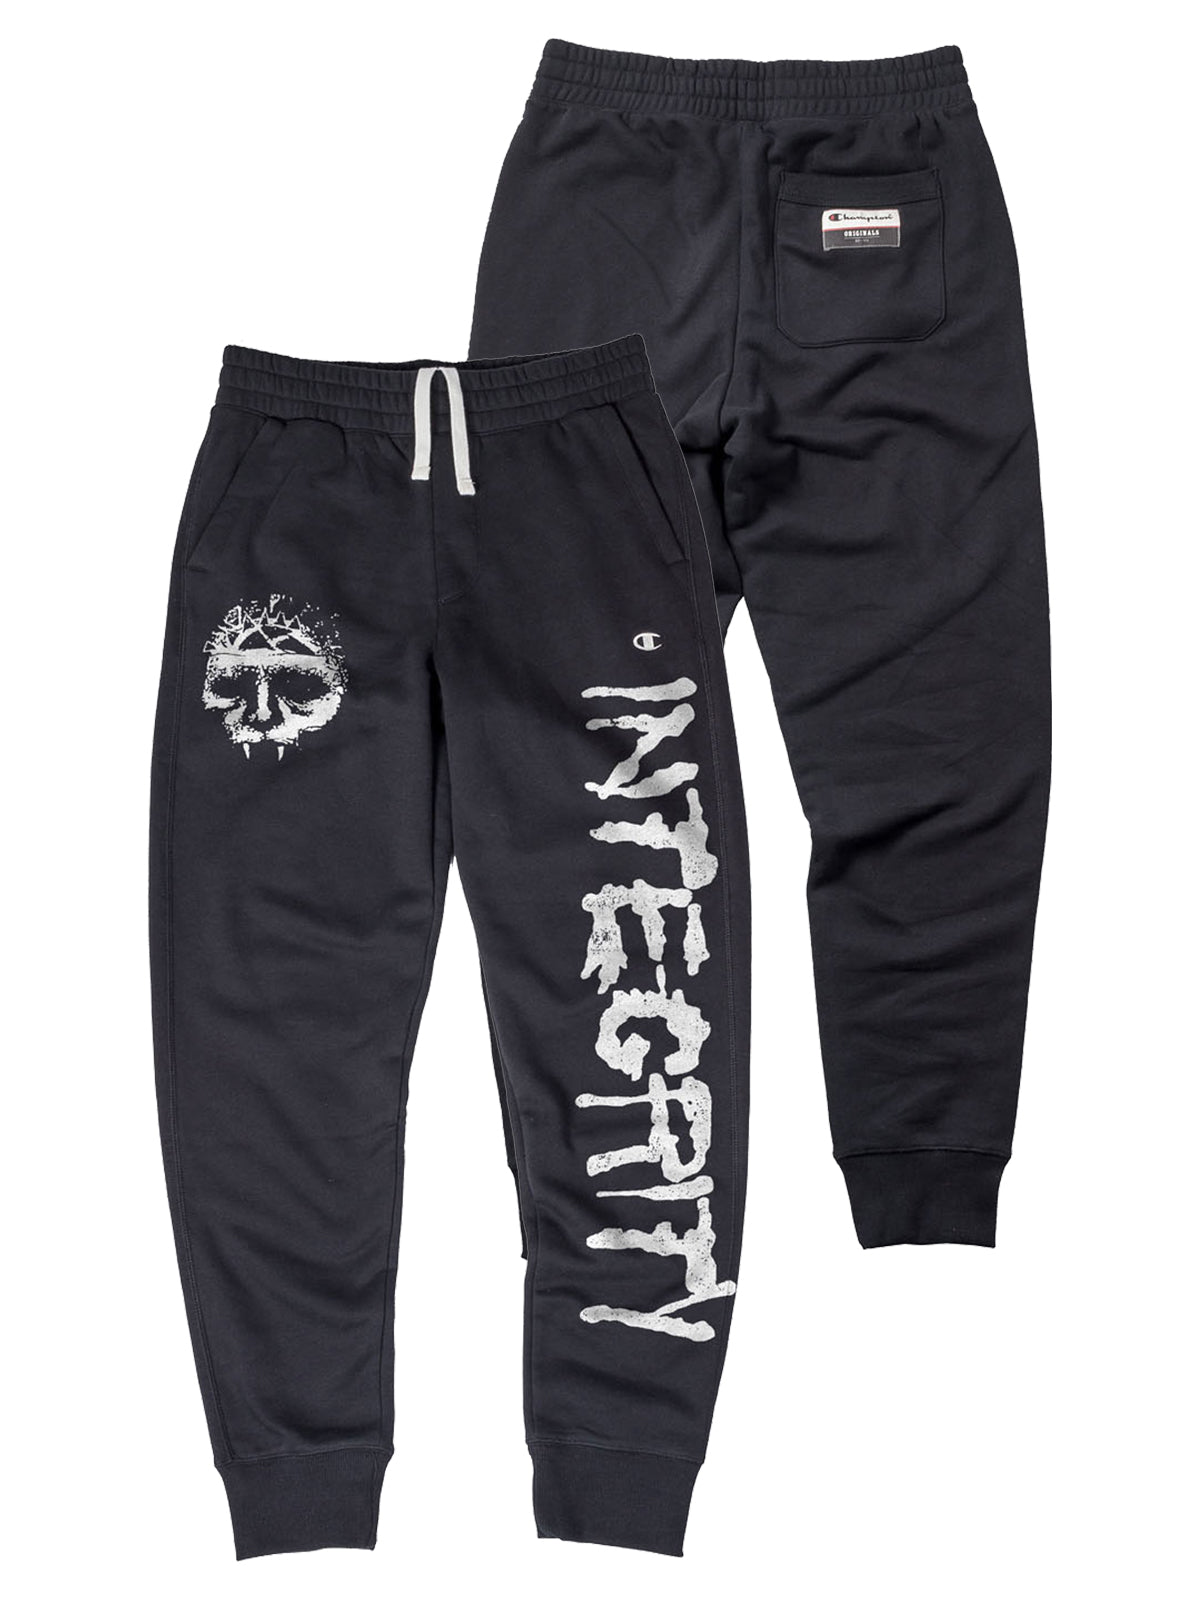 Integrity - Champion Joggers - Merch Limited